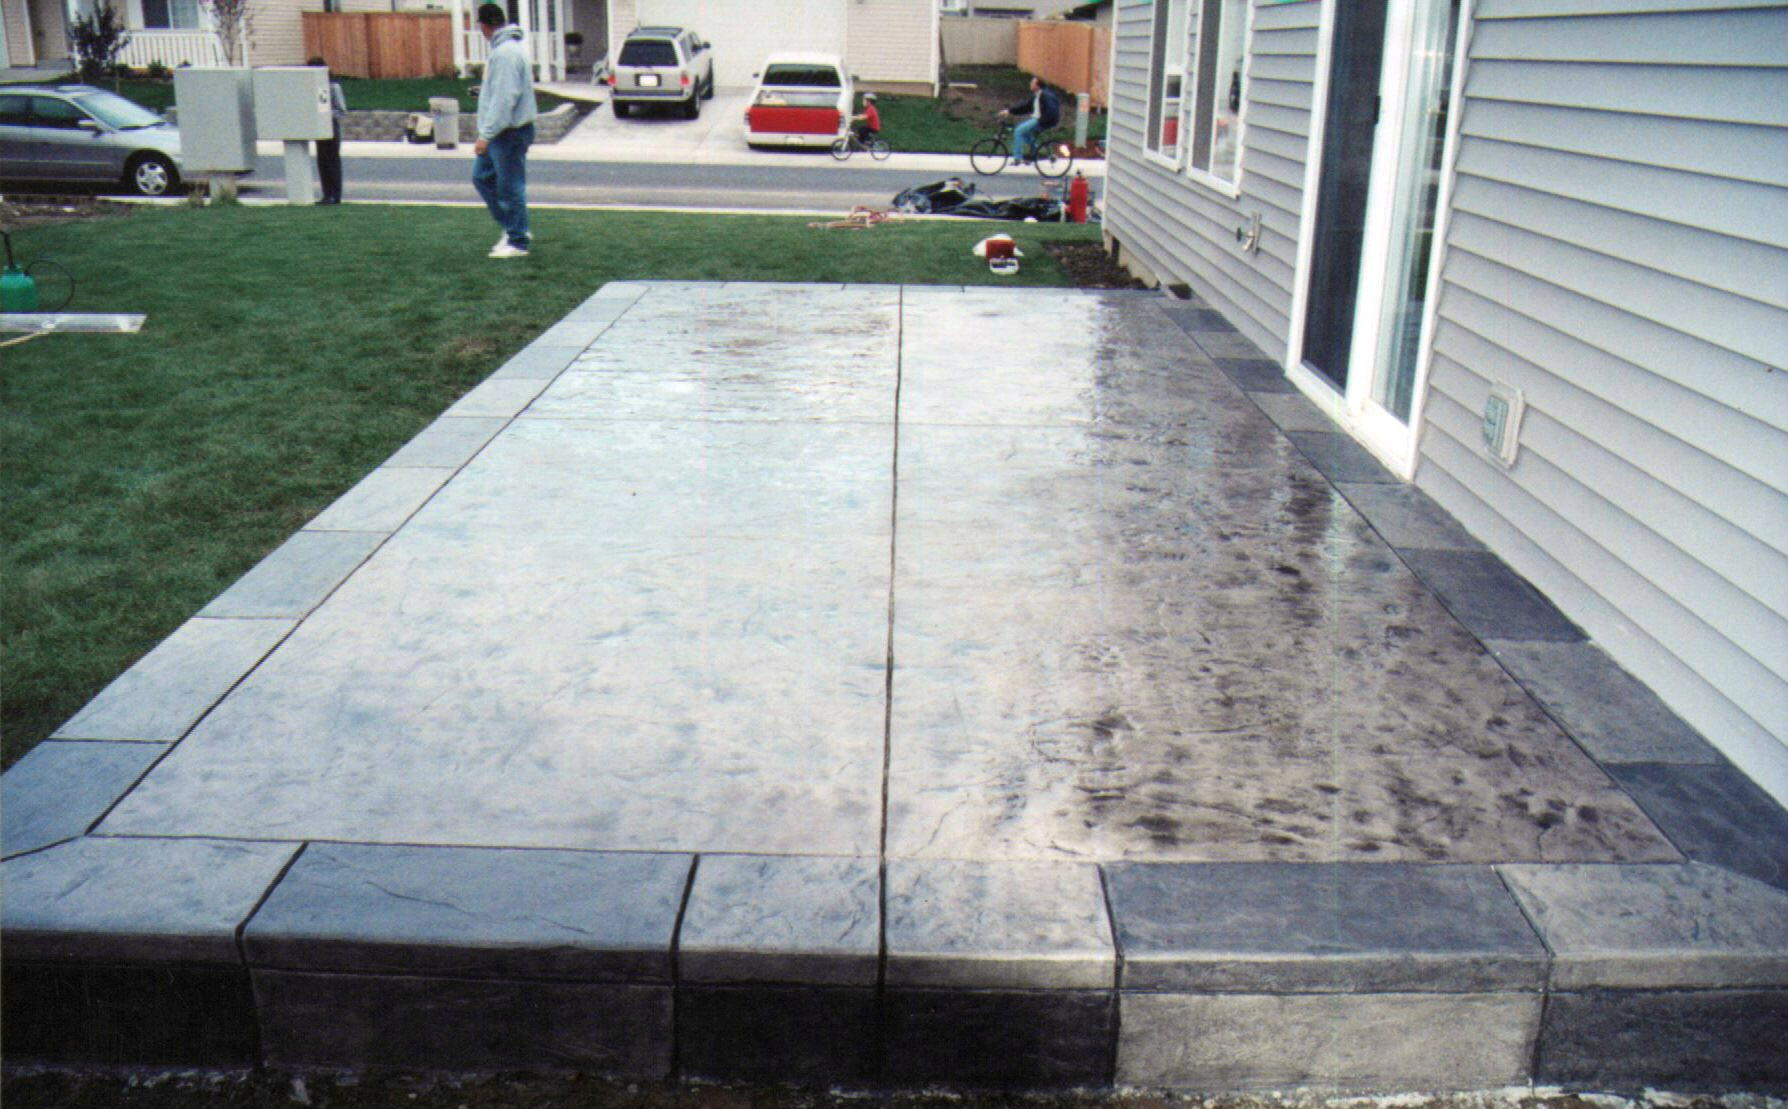 Concrete Design Ideas 20 photos of the amazing concrete patio designs stamped concrete patio design ideas Concrete Backyard Ideas Cement Patio Designs Unique Concrete Design Llp Concrete Masonry Greenville Concrete Backyard Ideas